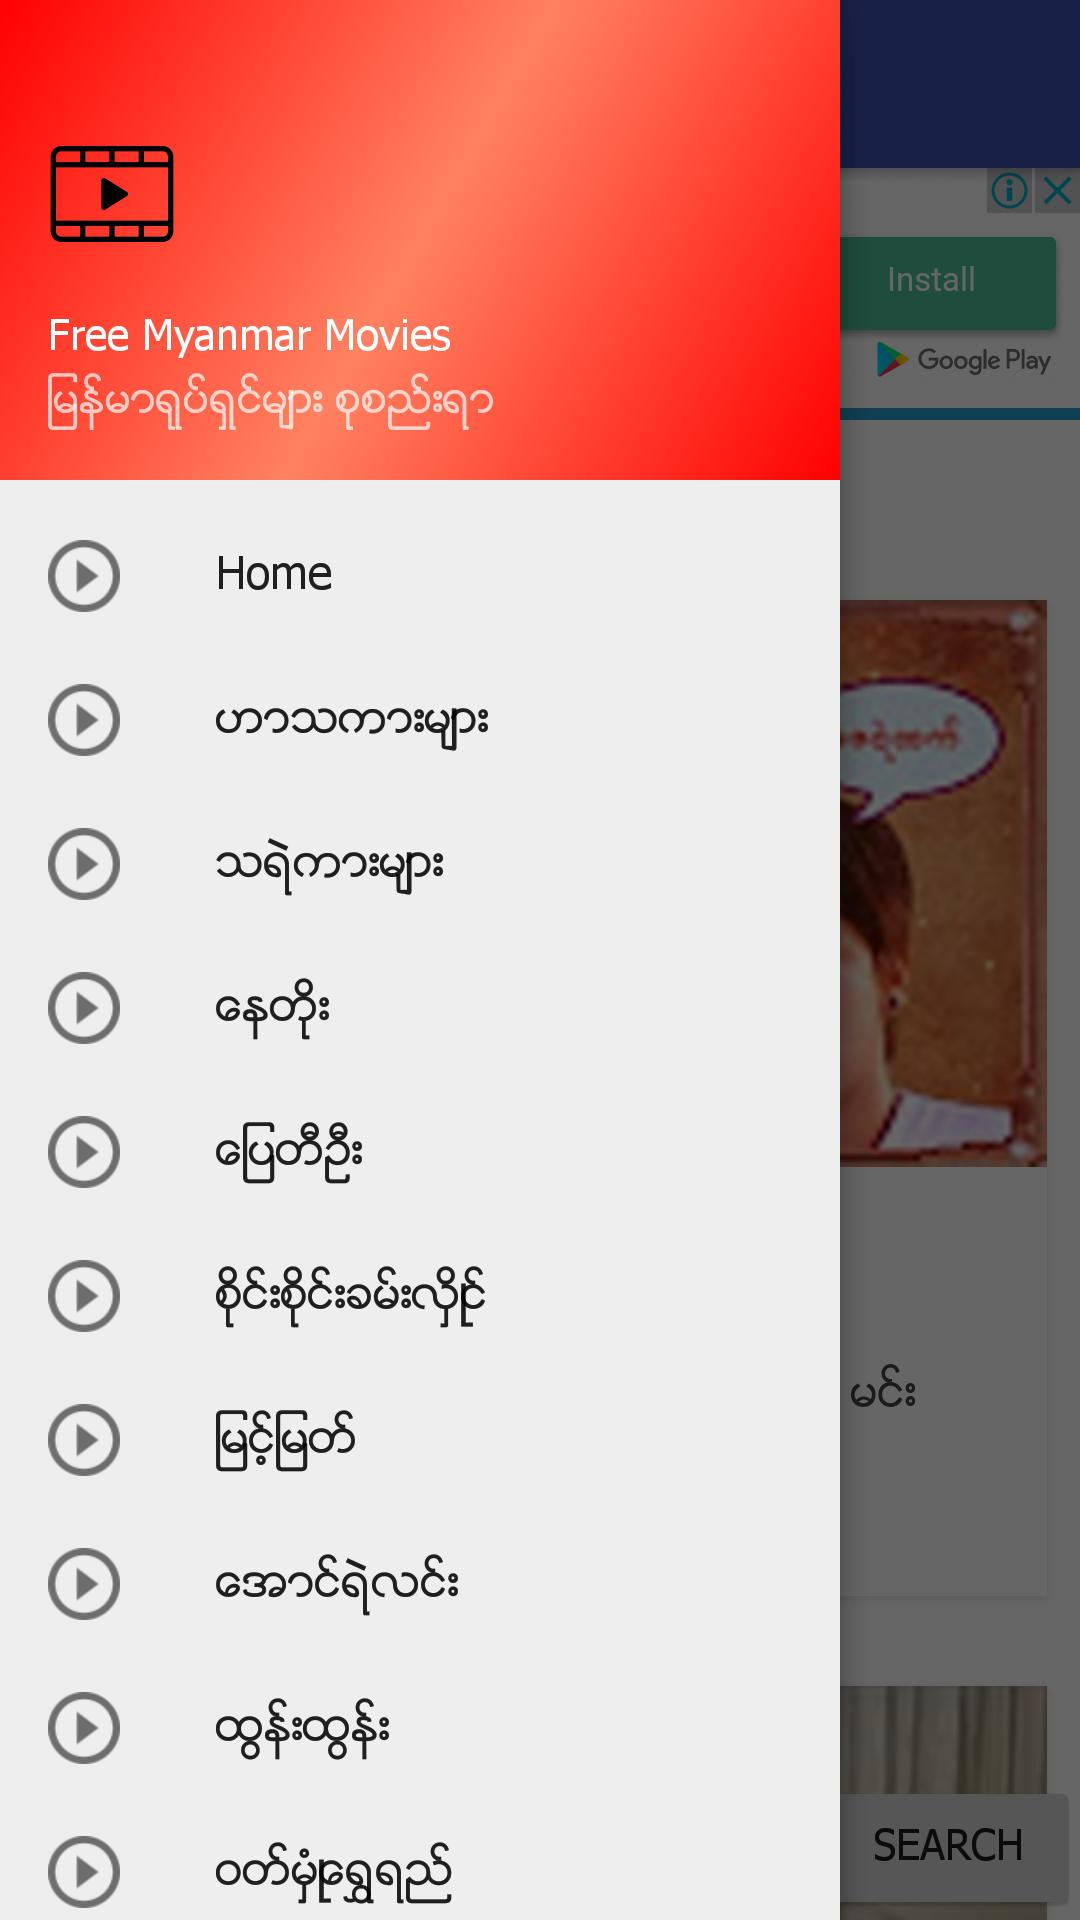 Free Myanmar Movies for Android - APK Download